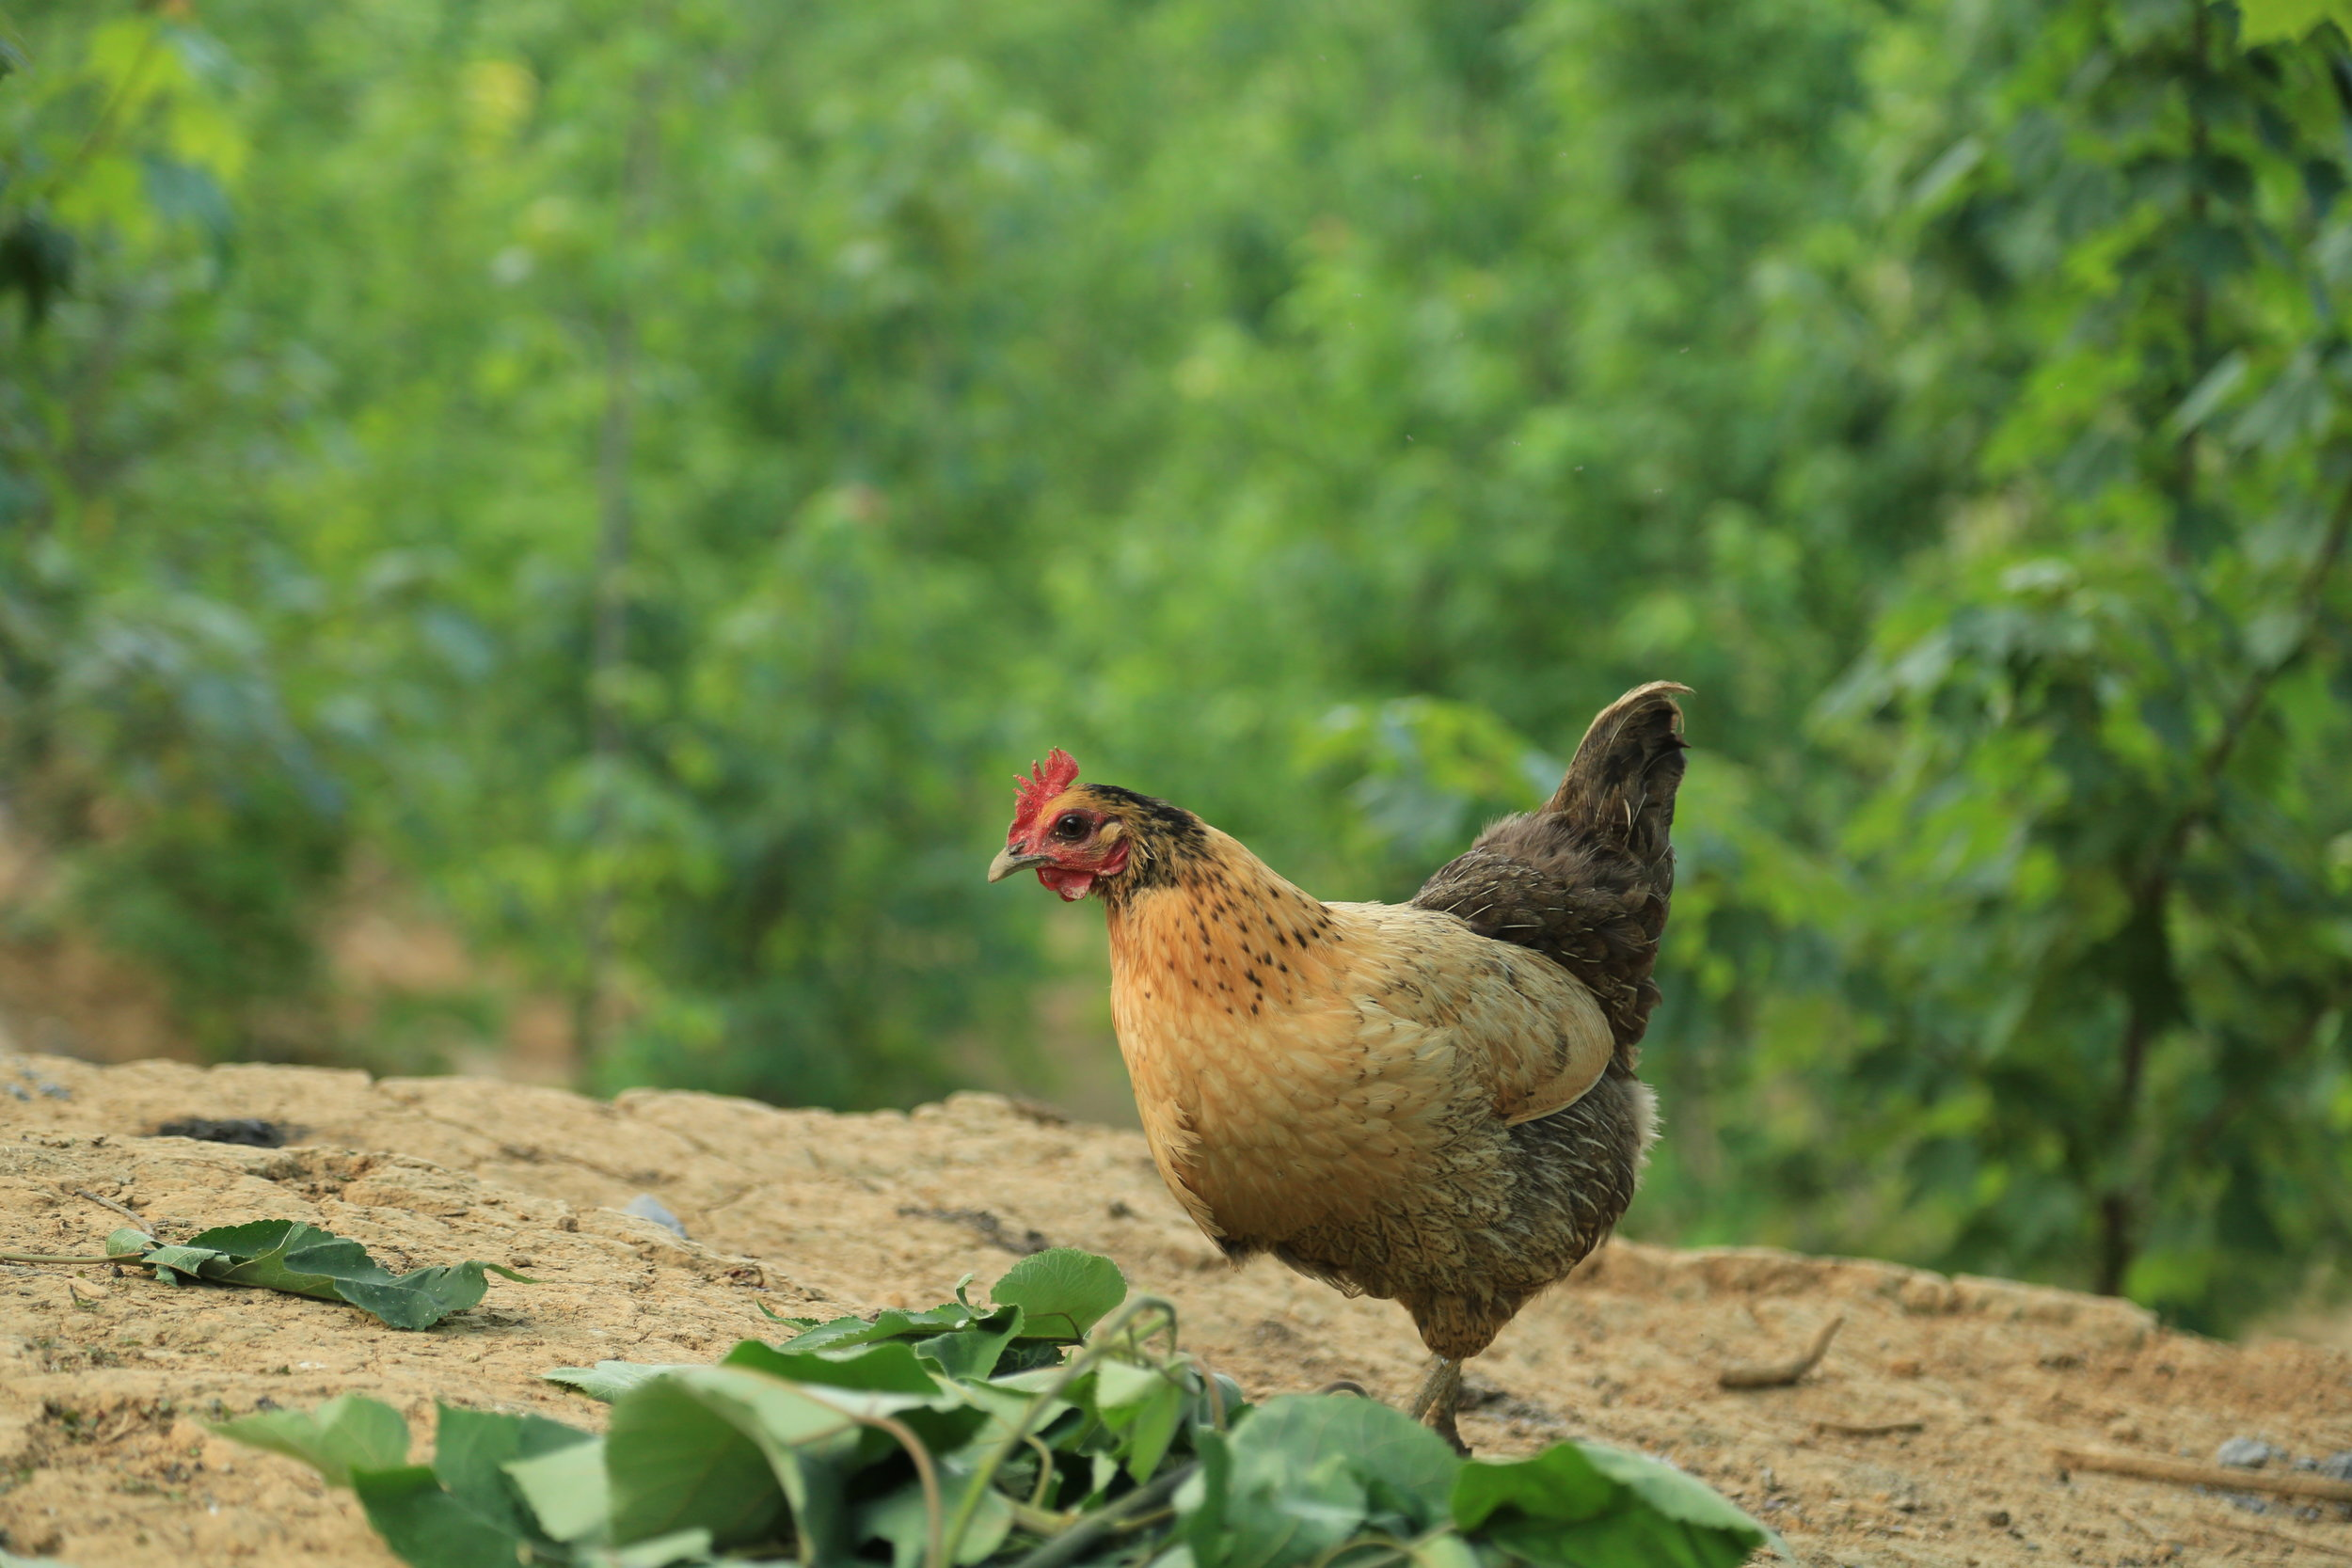 Chickens are forest animals, the forest is safe & comfortable for them.